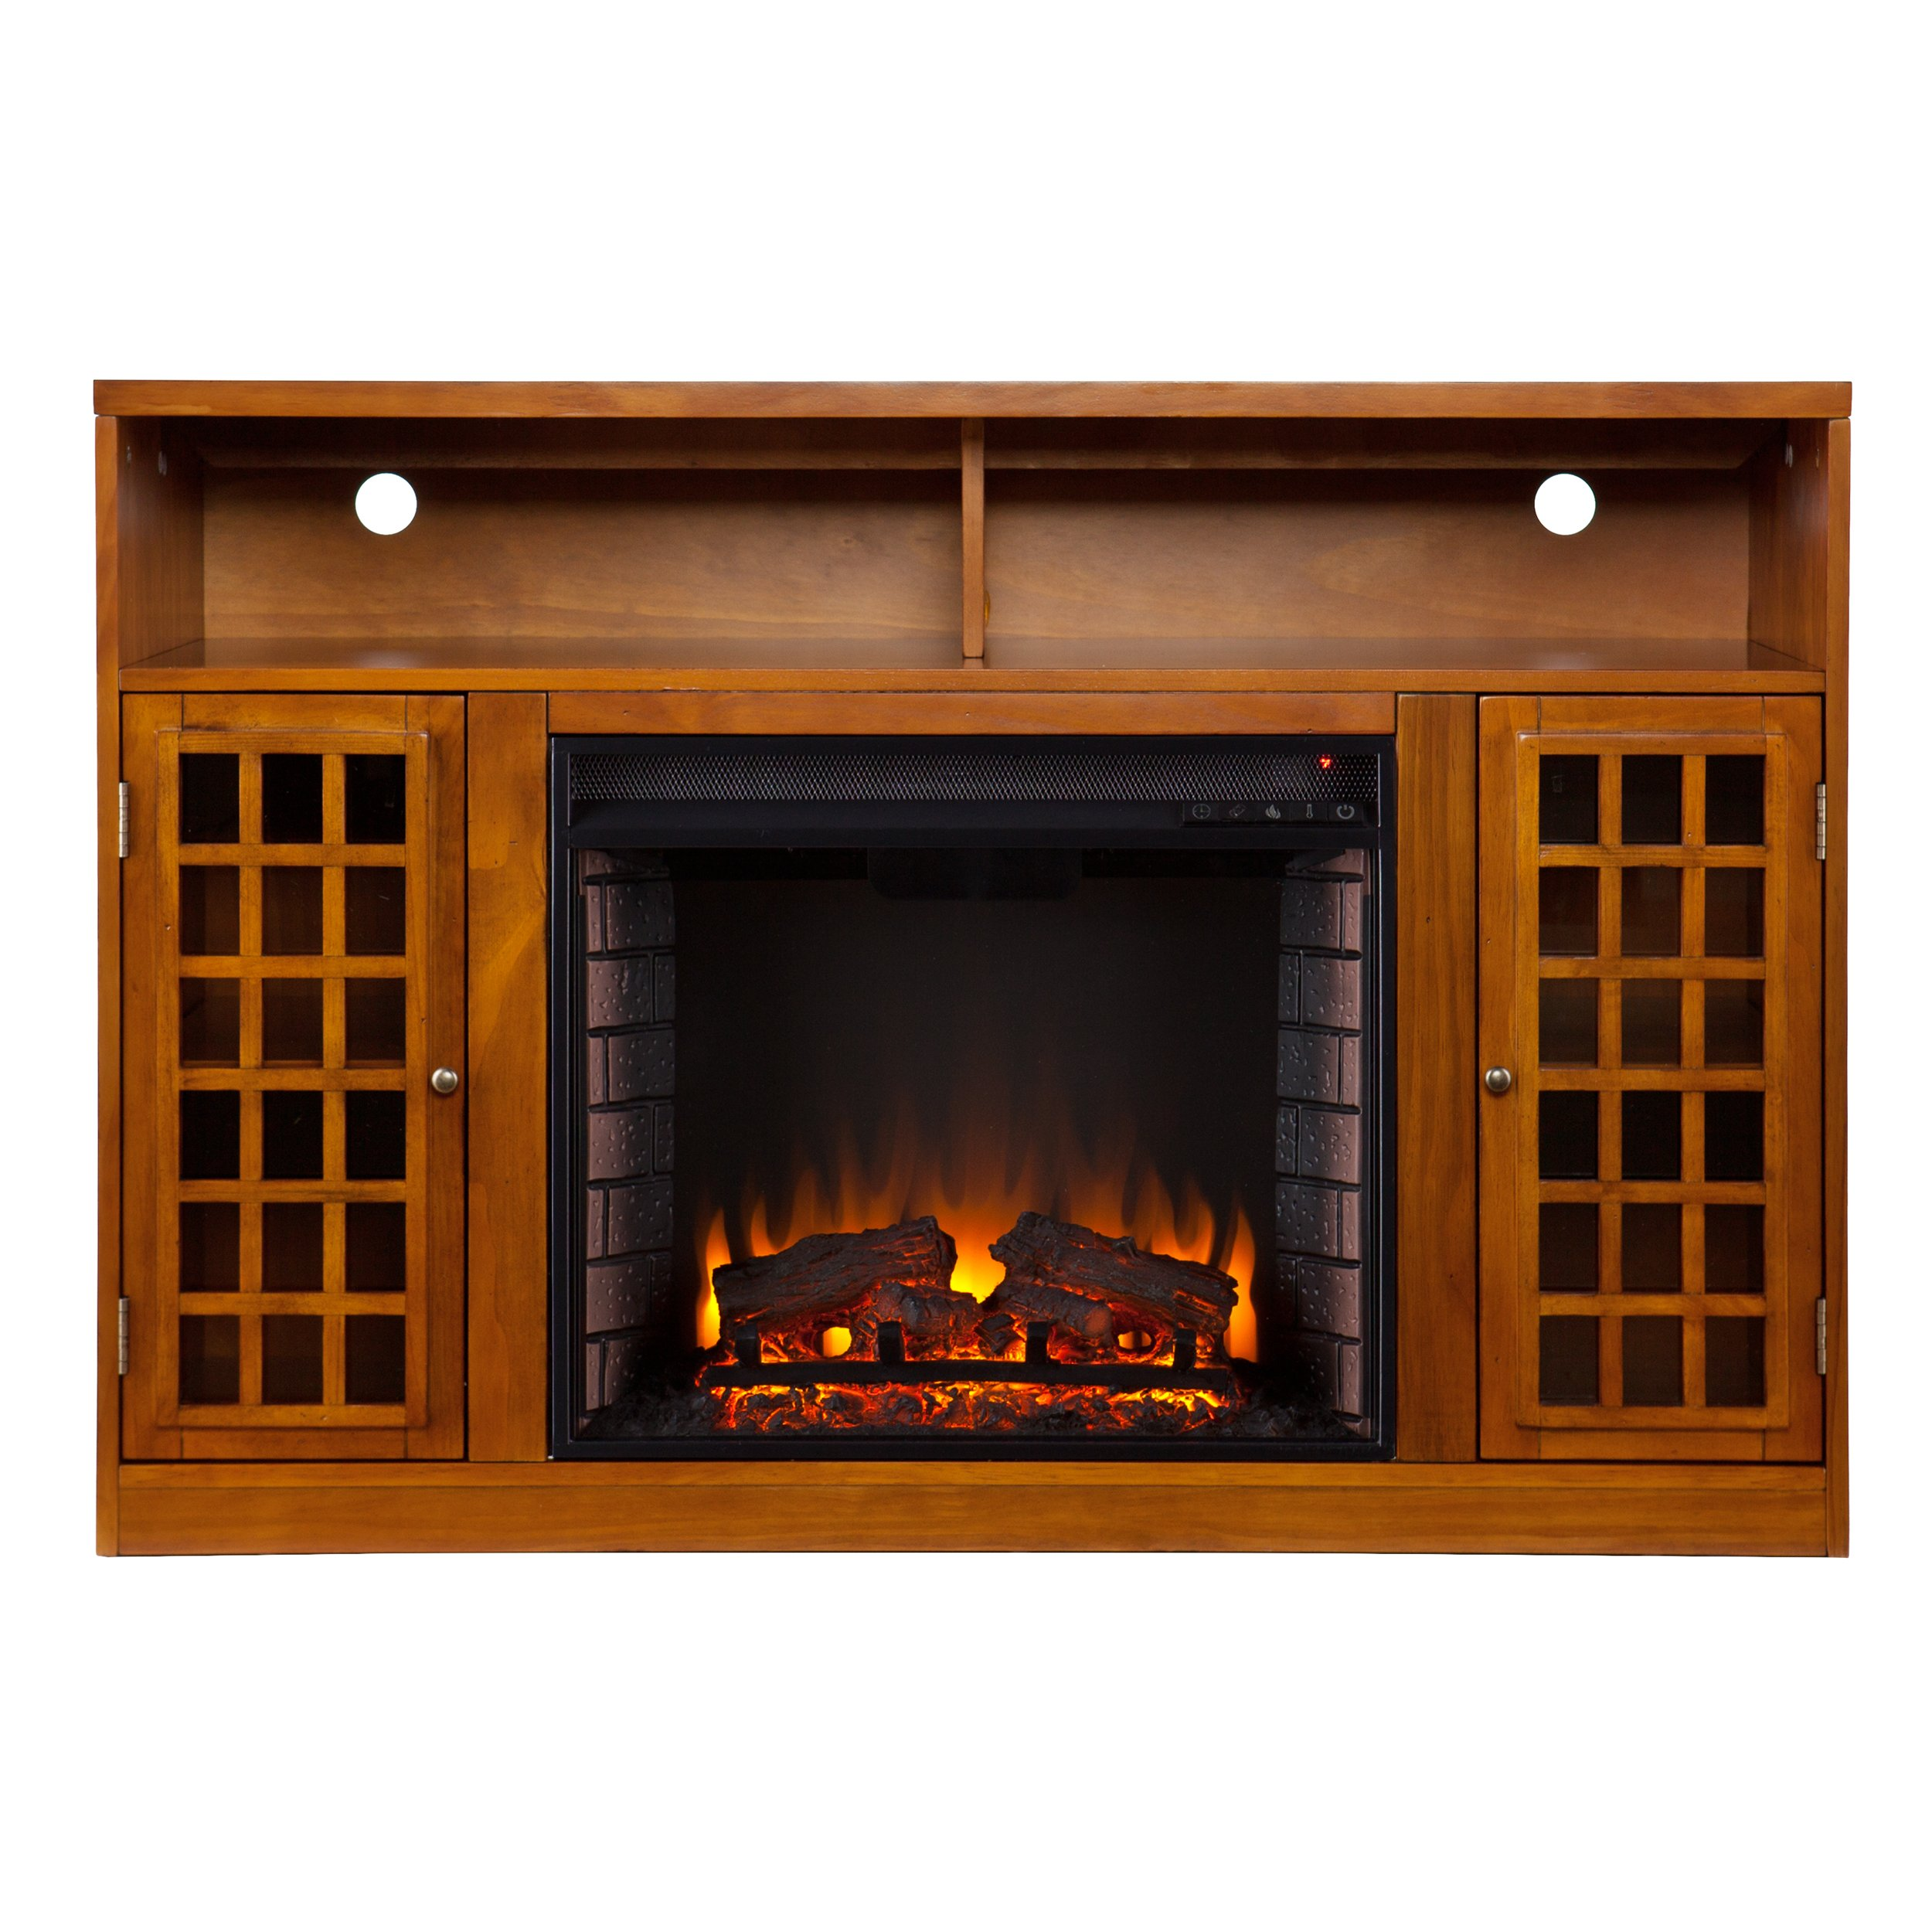 natural amazon dimplex amazing insert teak fireplaces white around style painted wooden traditional electric world for com metal fireplace bench design the flooring black wall ideas amatapictures simple frame corner full image